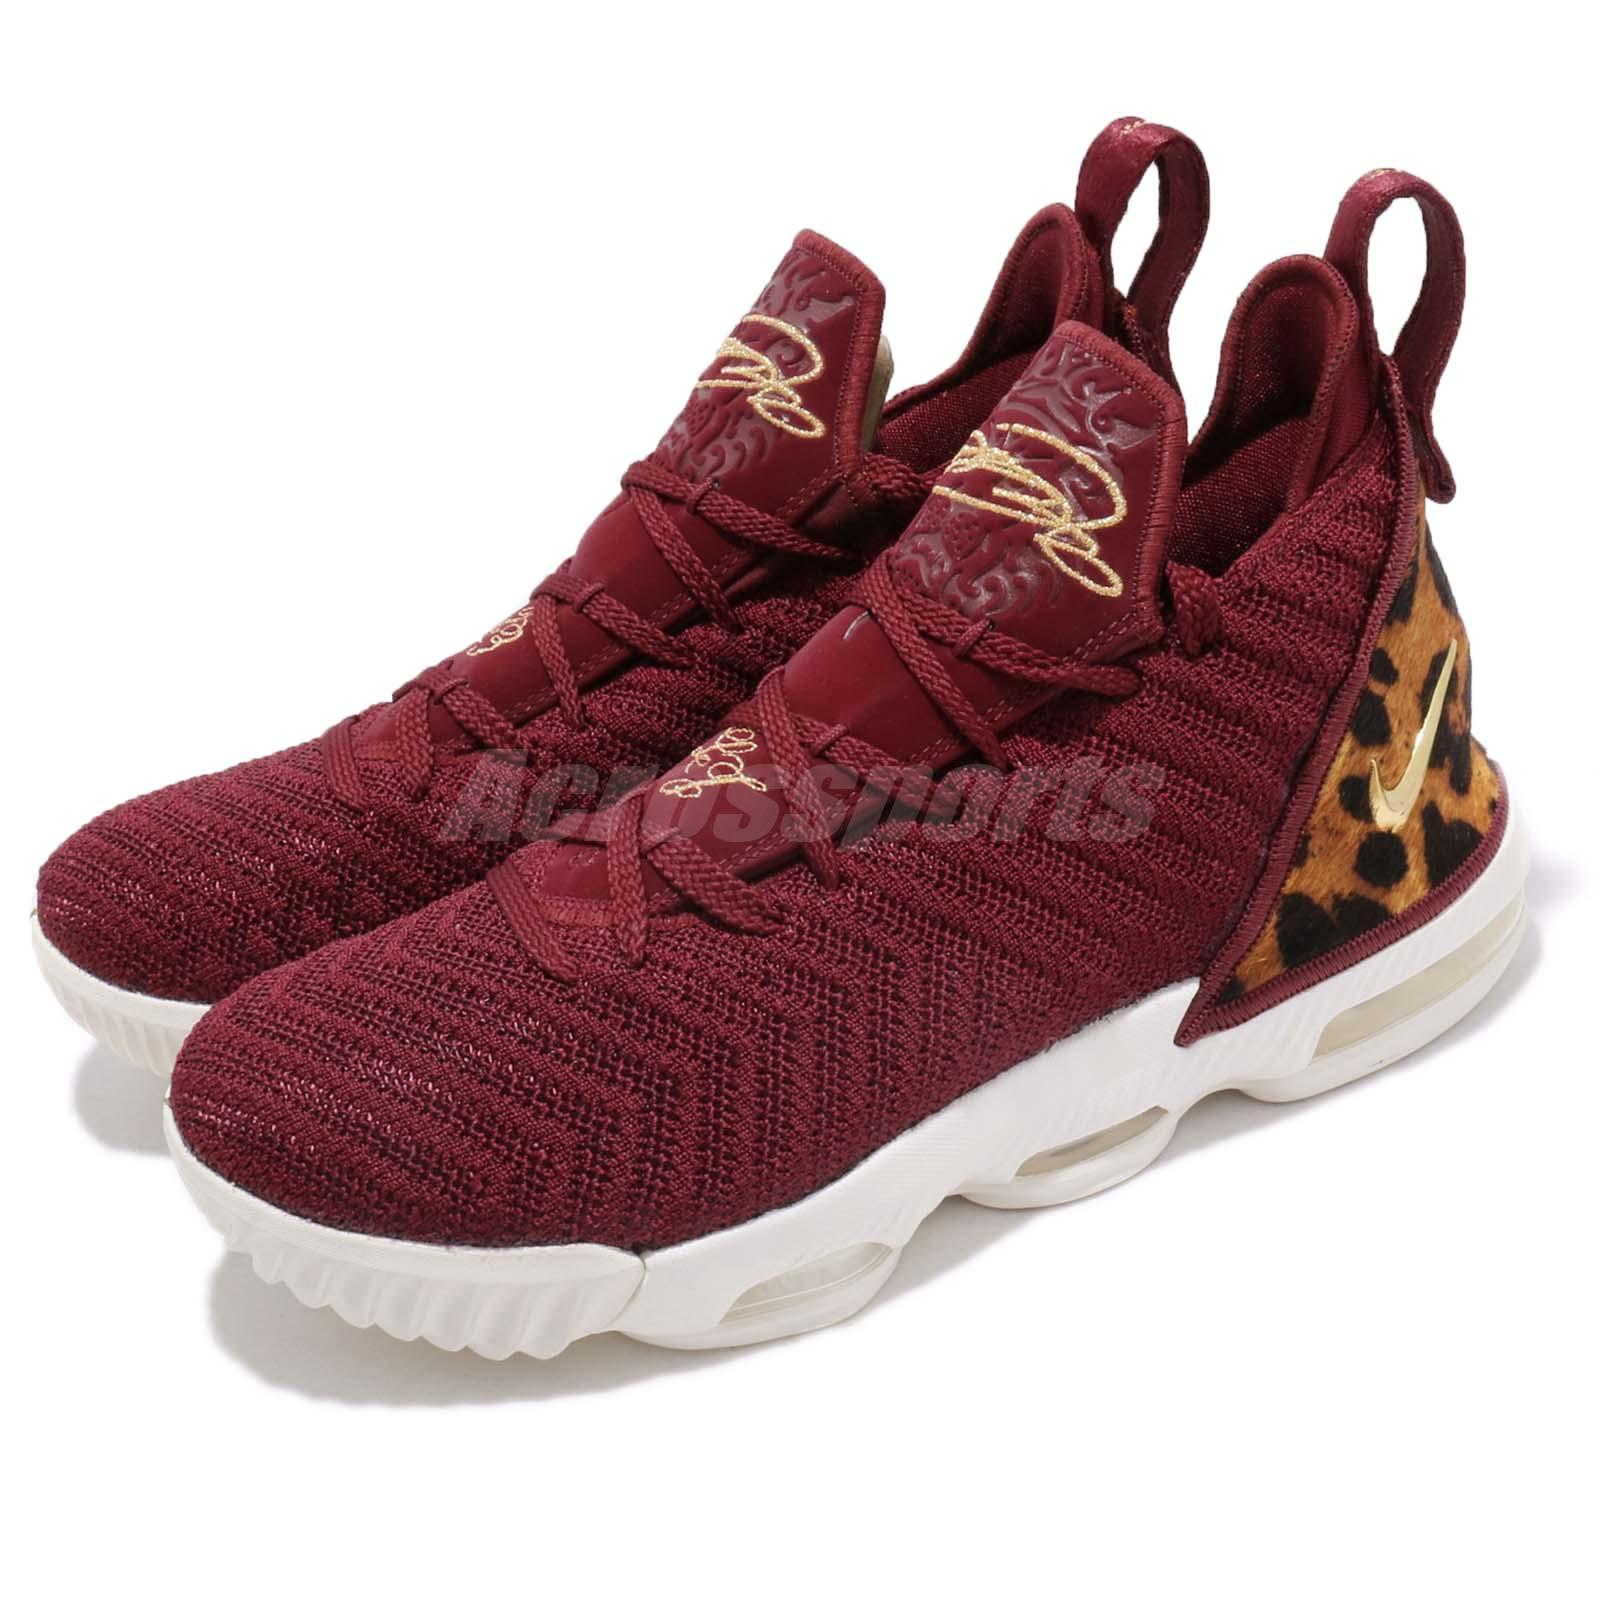 ae82de2326280 Details about Nike LeBron XVI GS 16 King James Red Gold Leopard Kid Youth  Women AQ2465-601